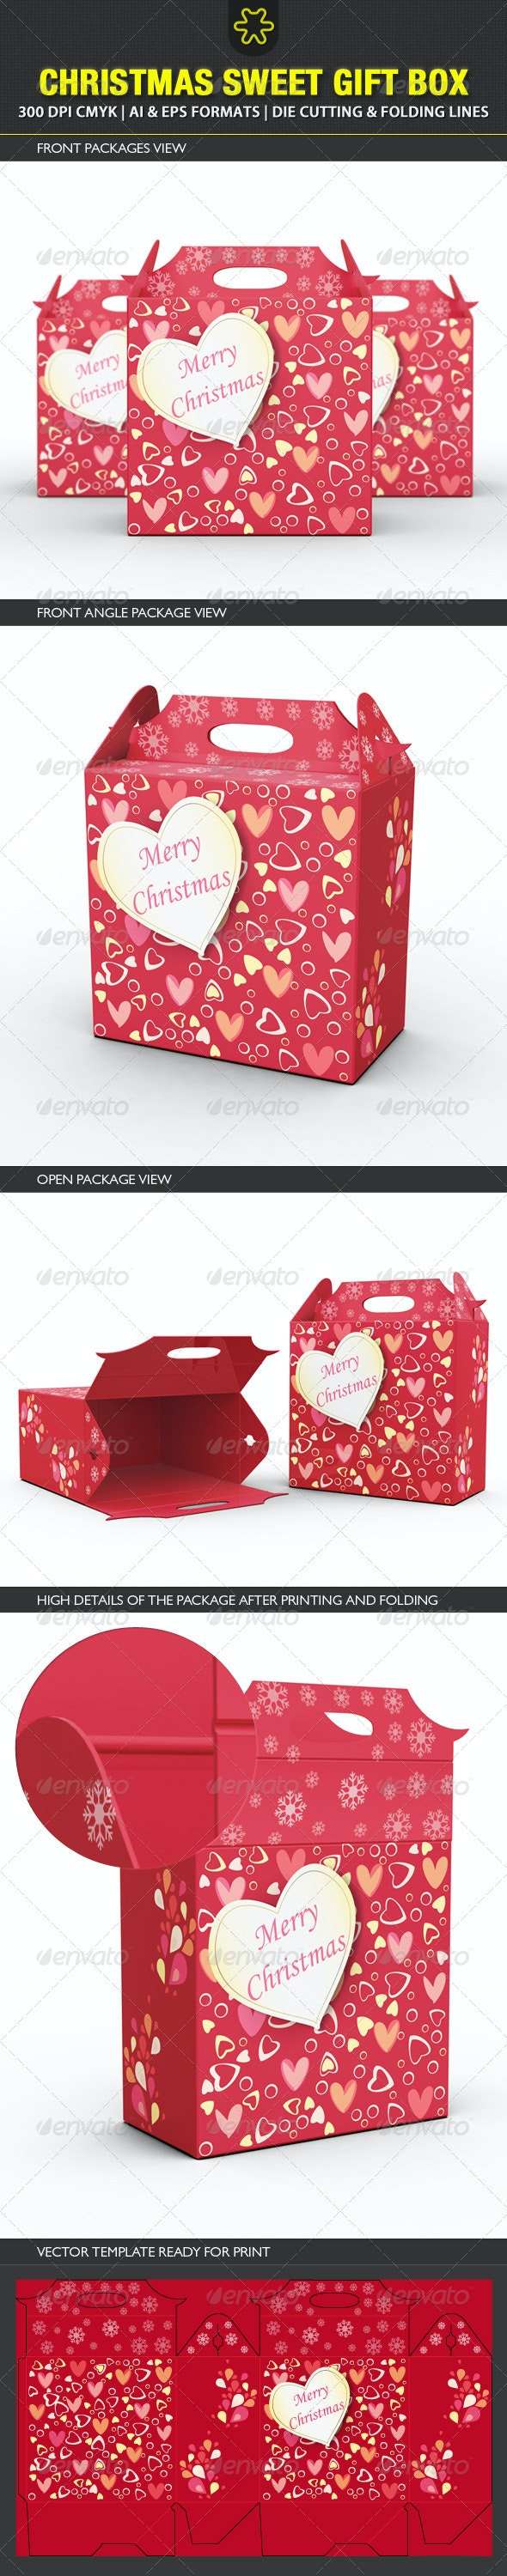 Christmas Sweet Gift Box Template - Packaging Print Templates